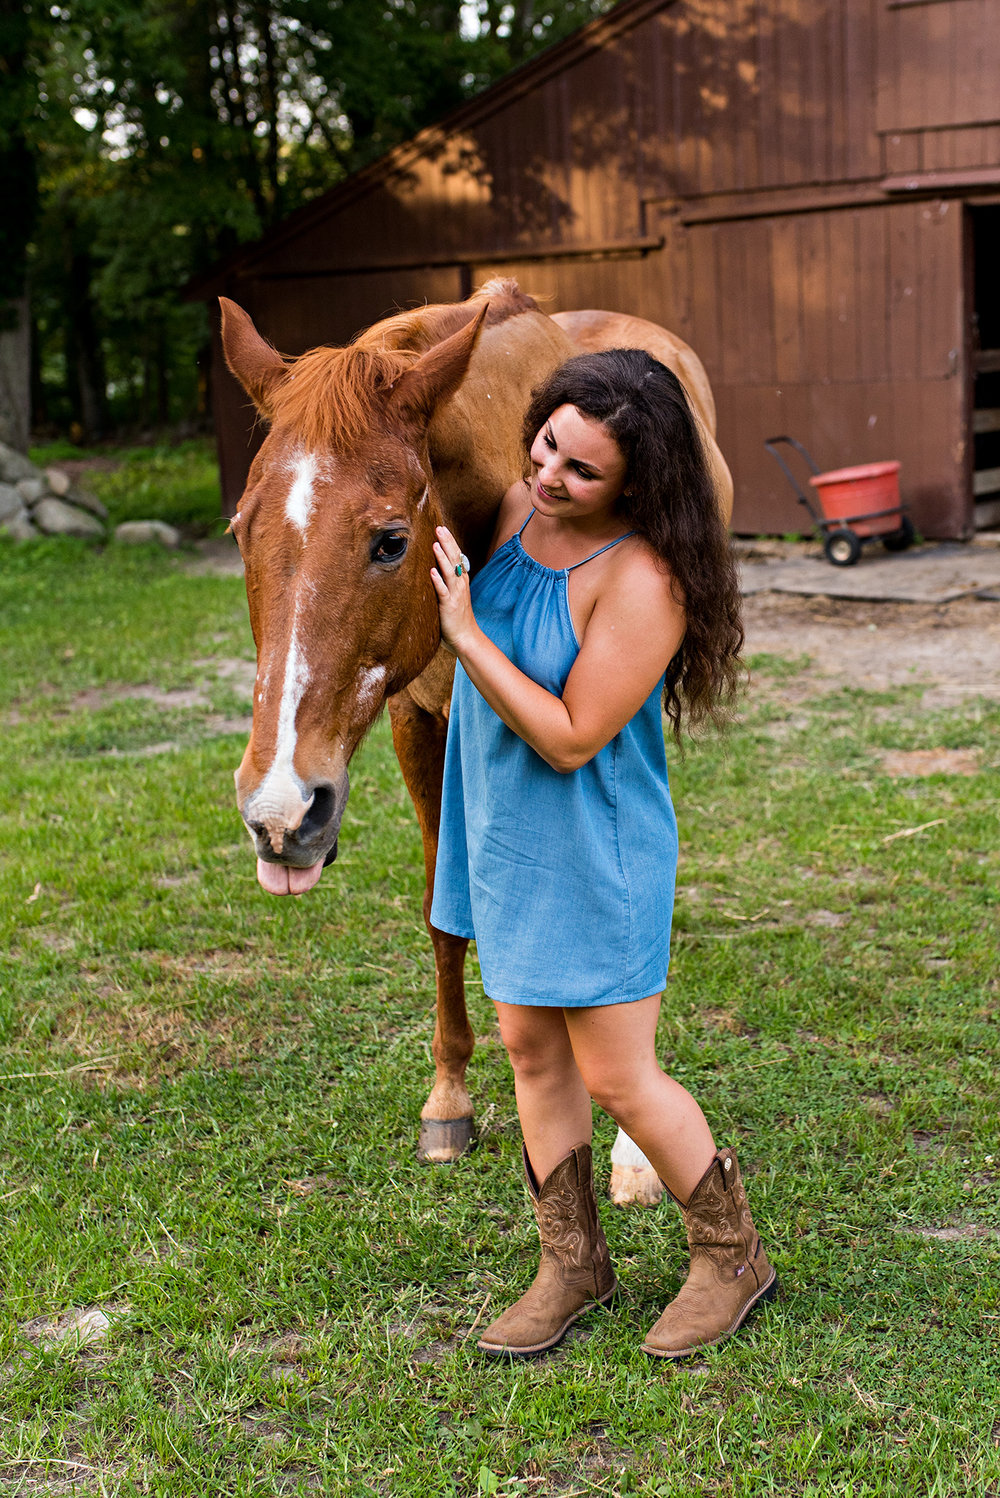 connecticut high school senior portrait photography with a horse on a farm